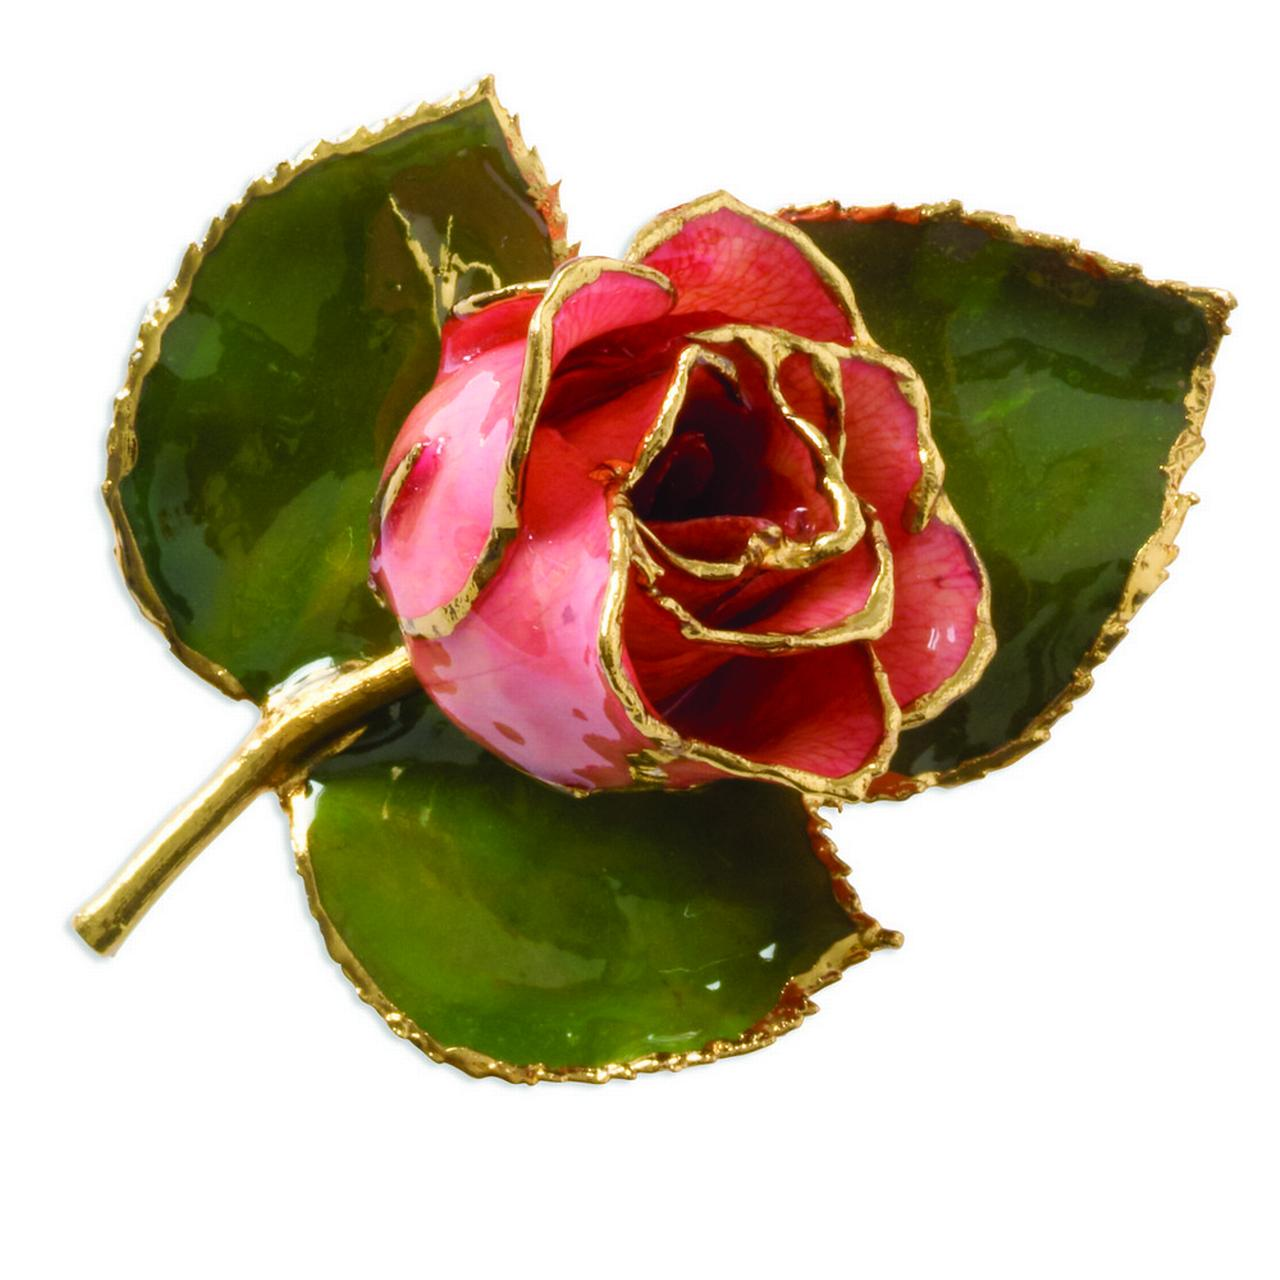 24k Gold Trim Pink Rose Brooch Pin by